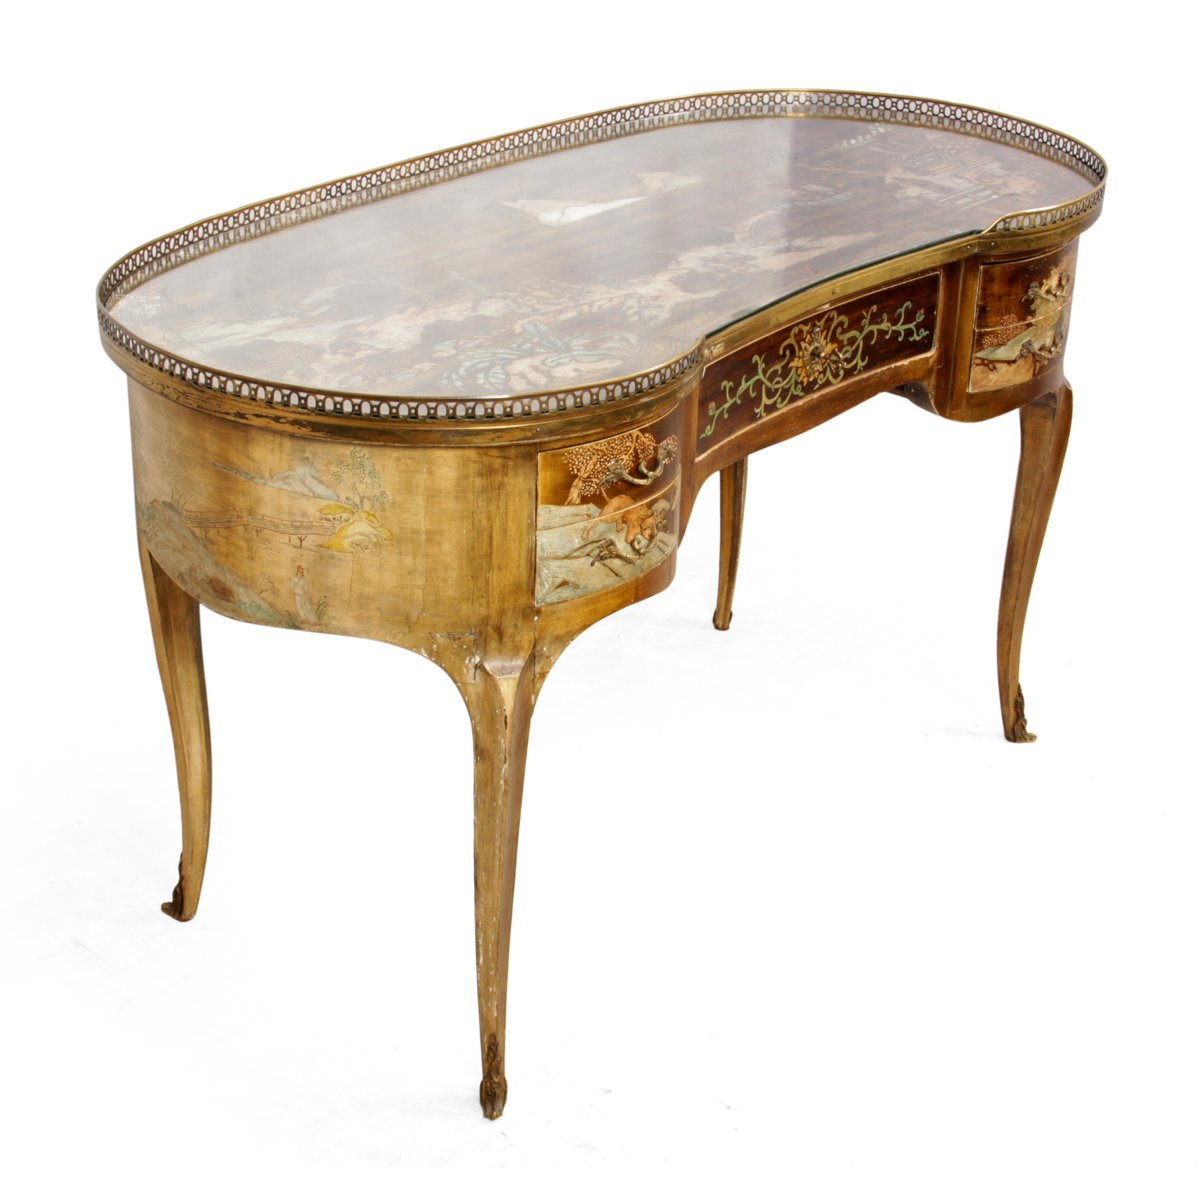 - Antique French Chinoiserie Kidney Writing Desk, 1860s For Sale At Pamono